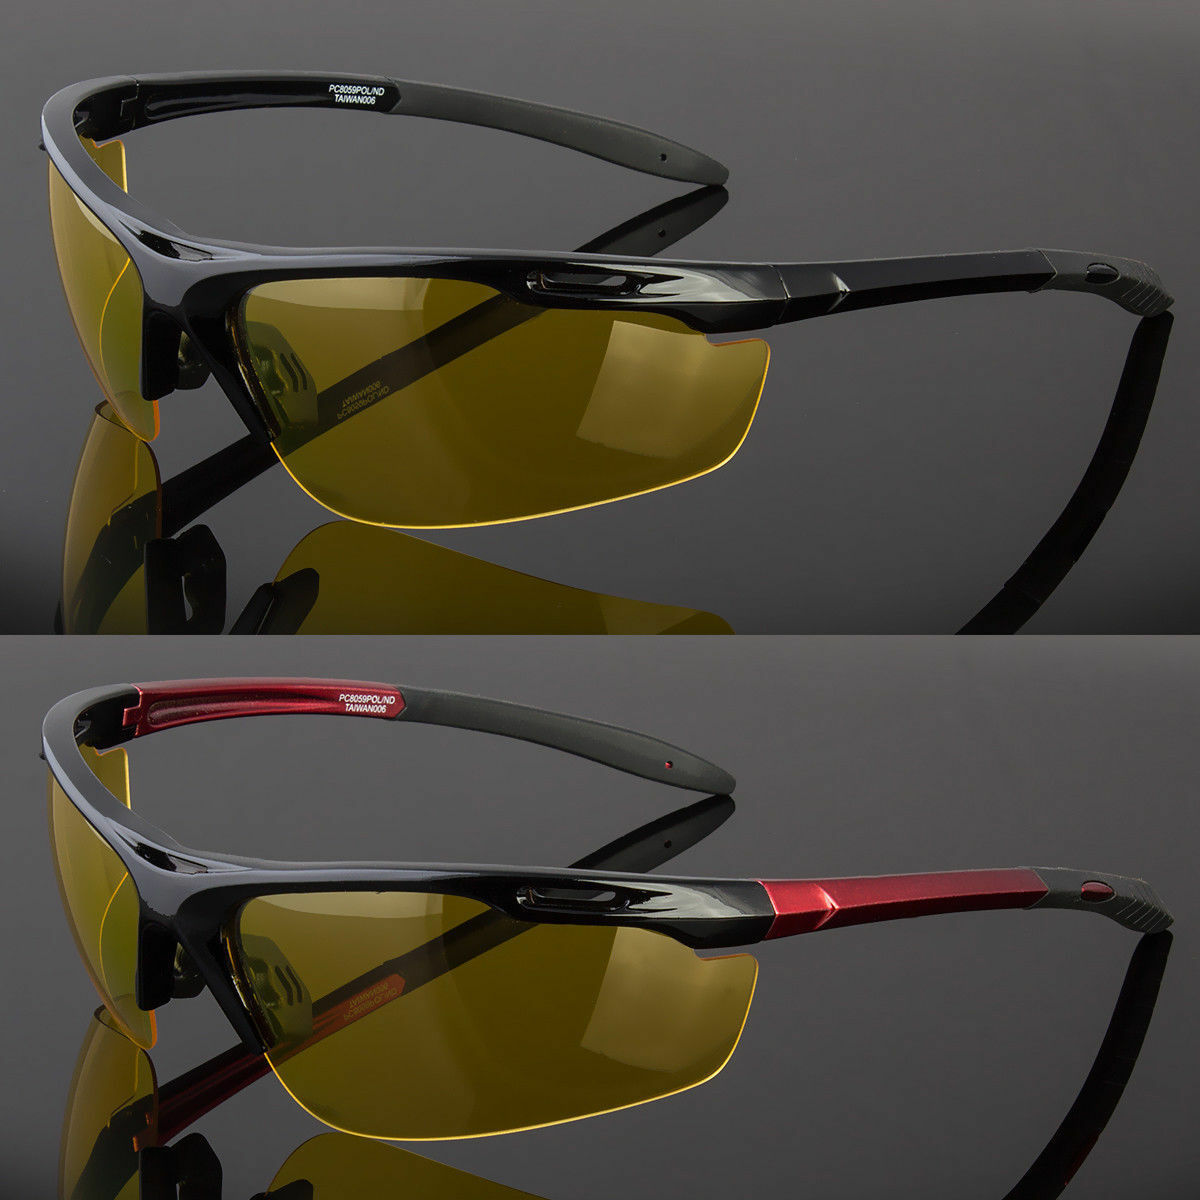 Day Night Vision Polarized Sunglasses Driving Sports Pilot S